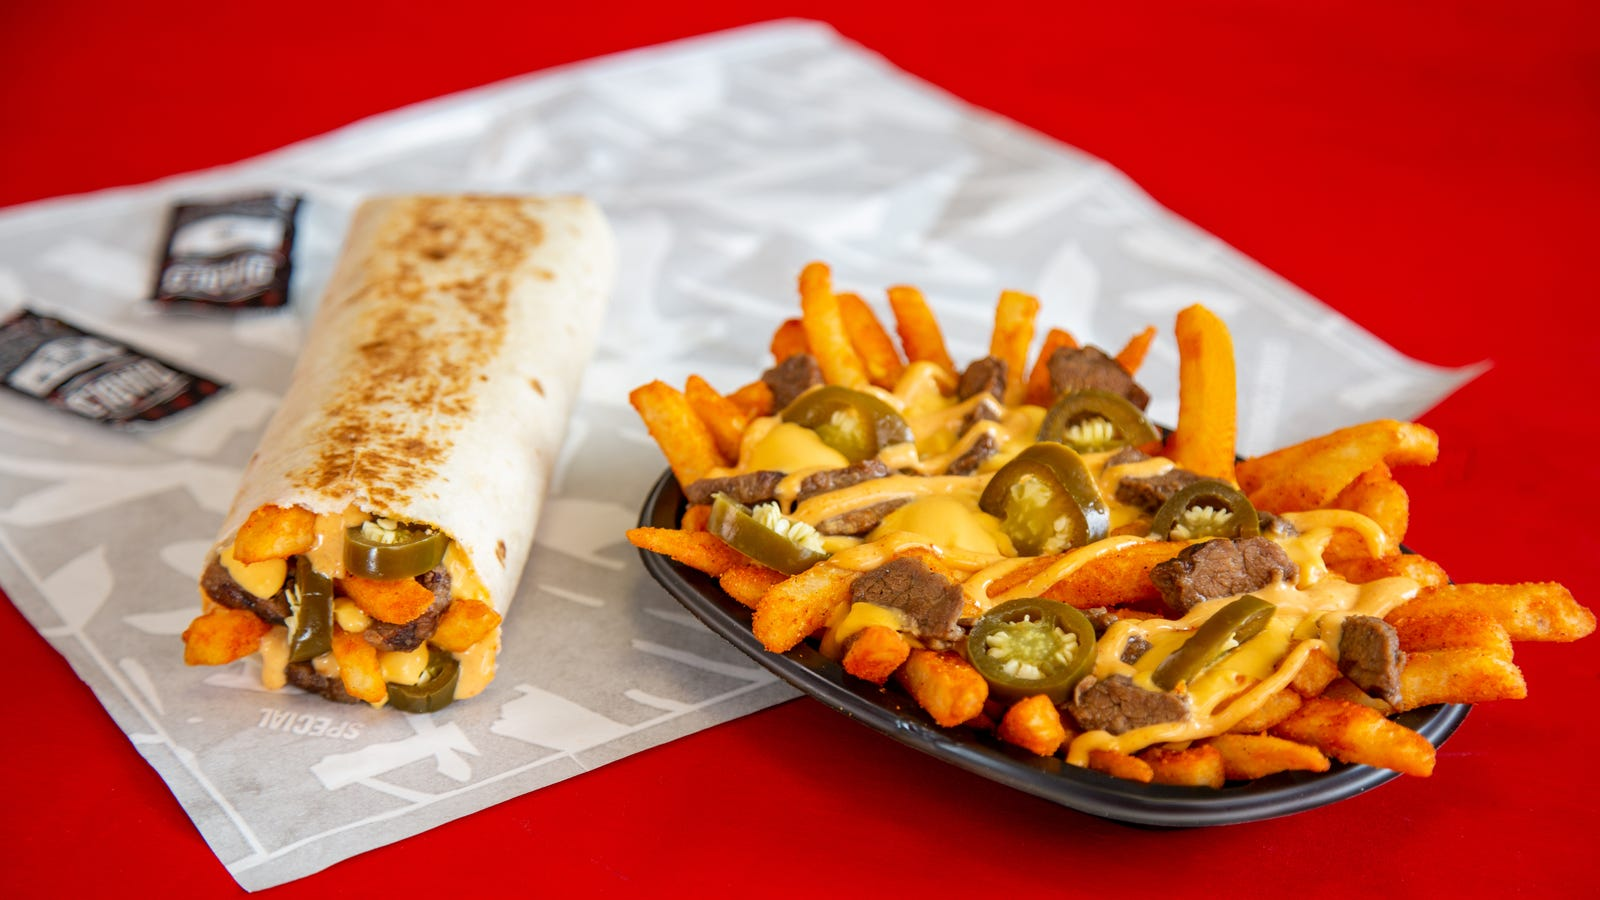 Taco Bell's Rattlesnake Fries might solve our loaded-fries dilemma